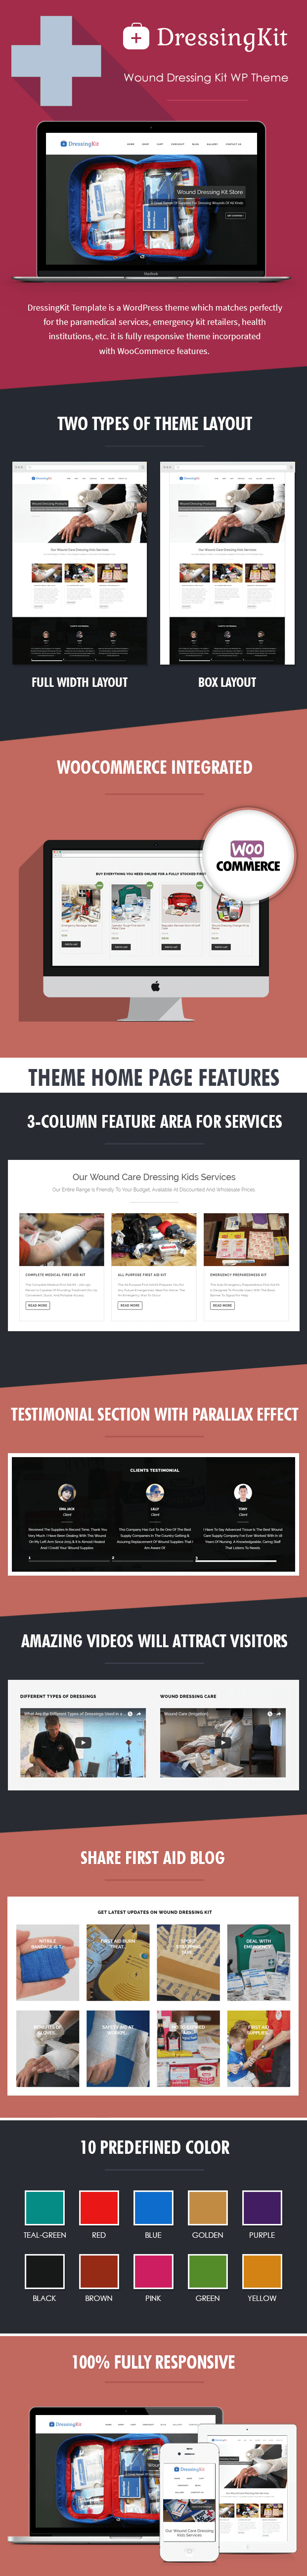 Wound Dressing Kit WordPress Theme Sales